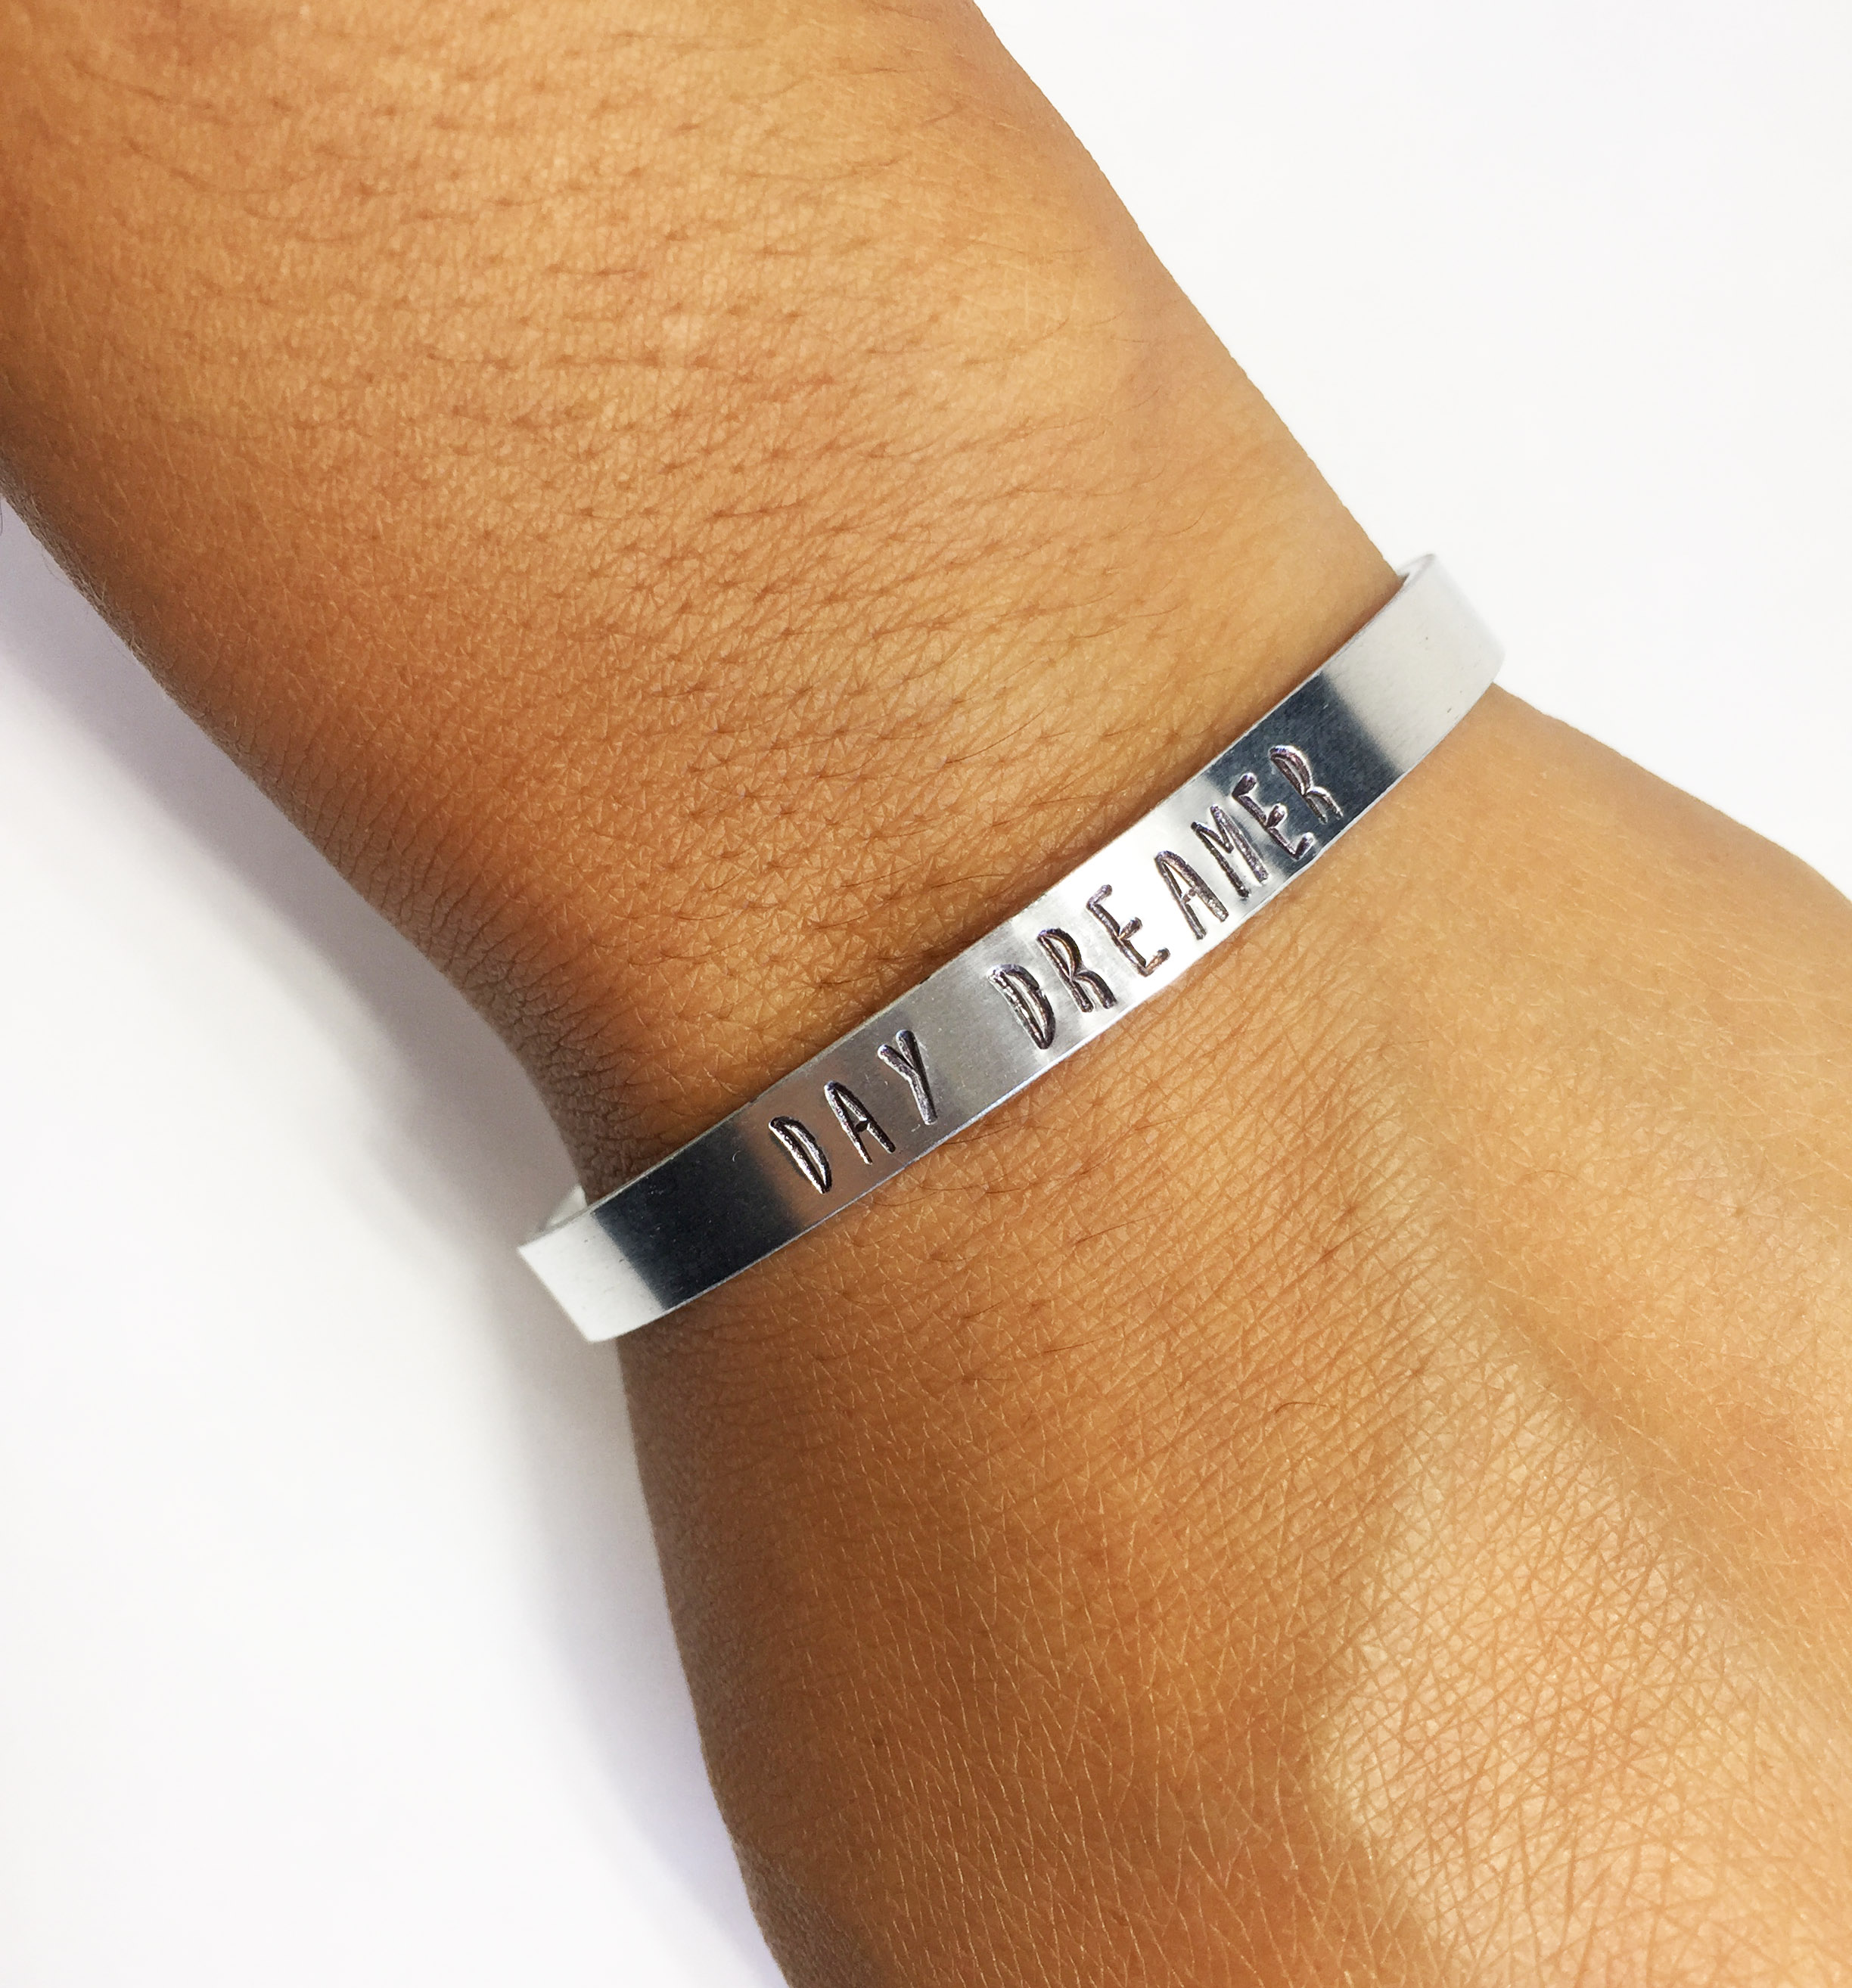 close inbr outs bracelet inspirational